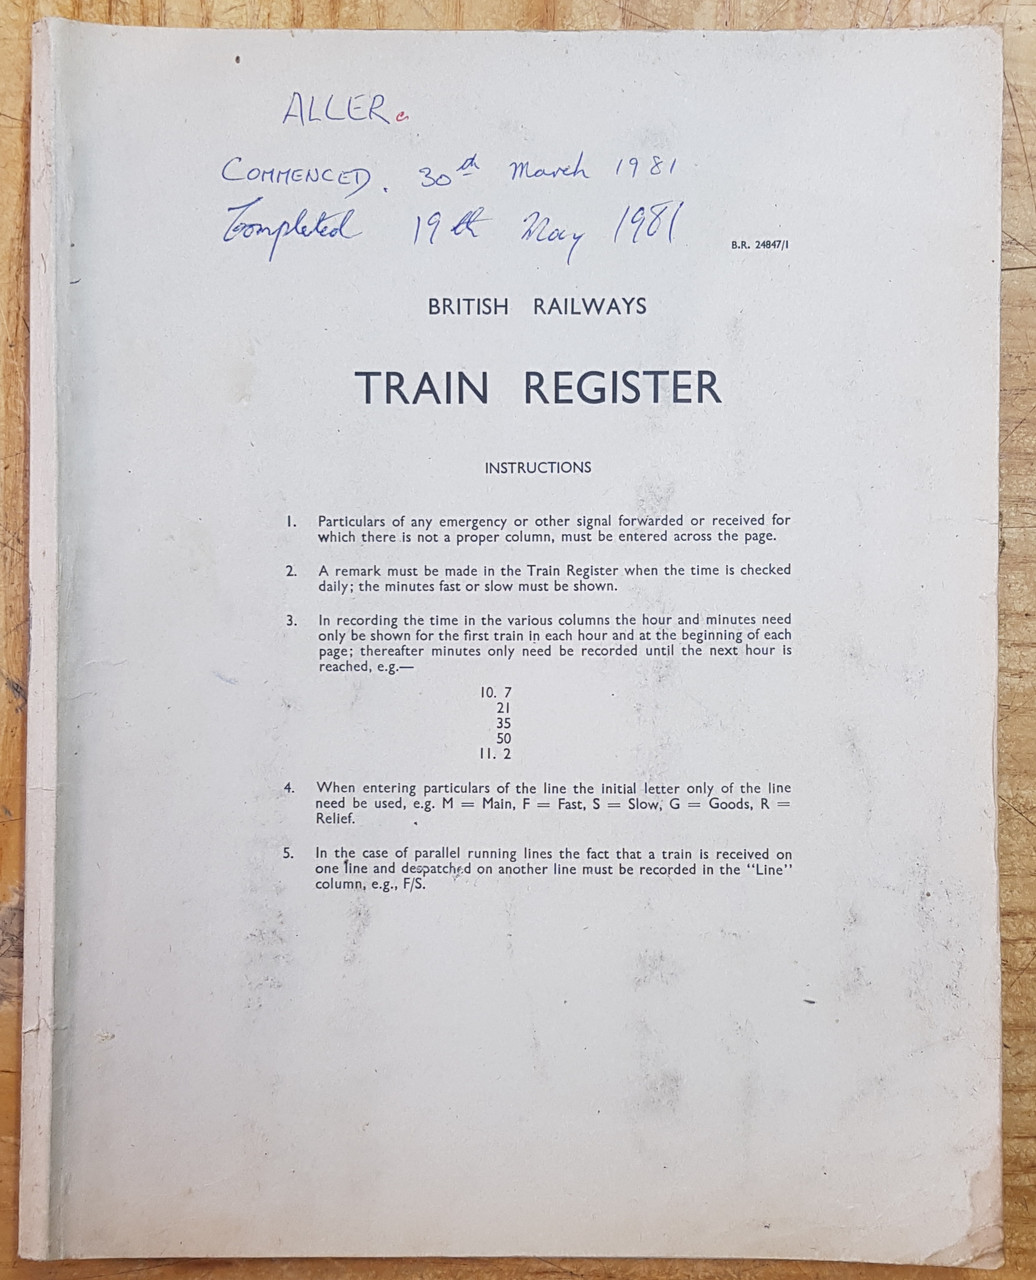 VT 3737 - SIGNAL BOX TRAIN REGISTER ALLER